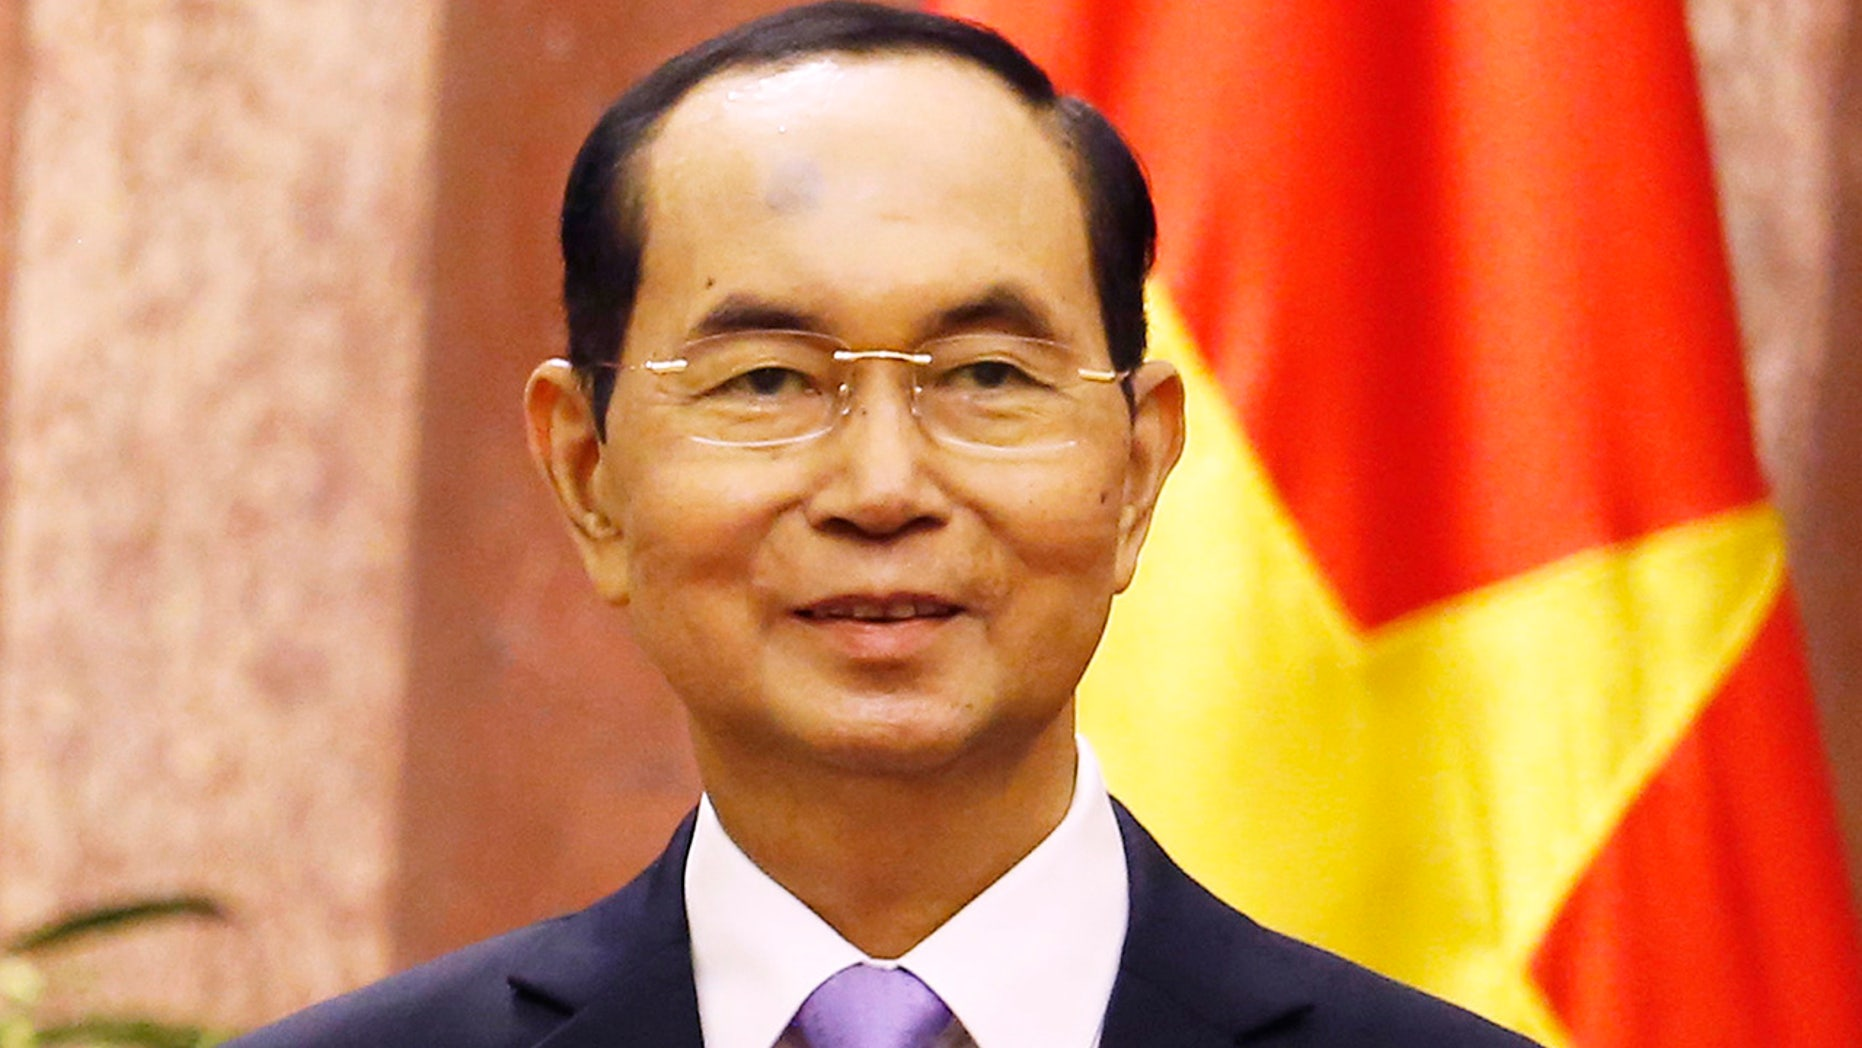 Official media say Vietnamese President Tran Dai Quang has died at age 61 due to illness on Friday.